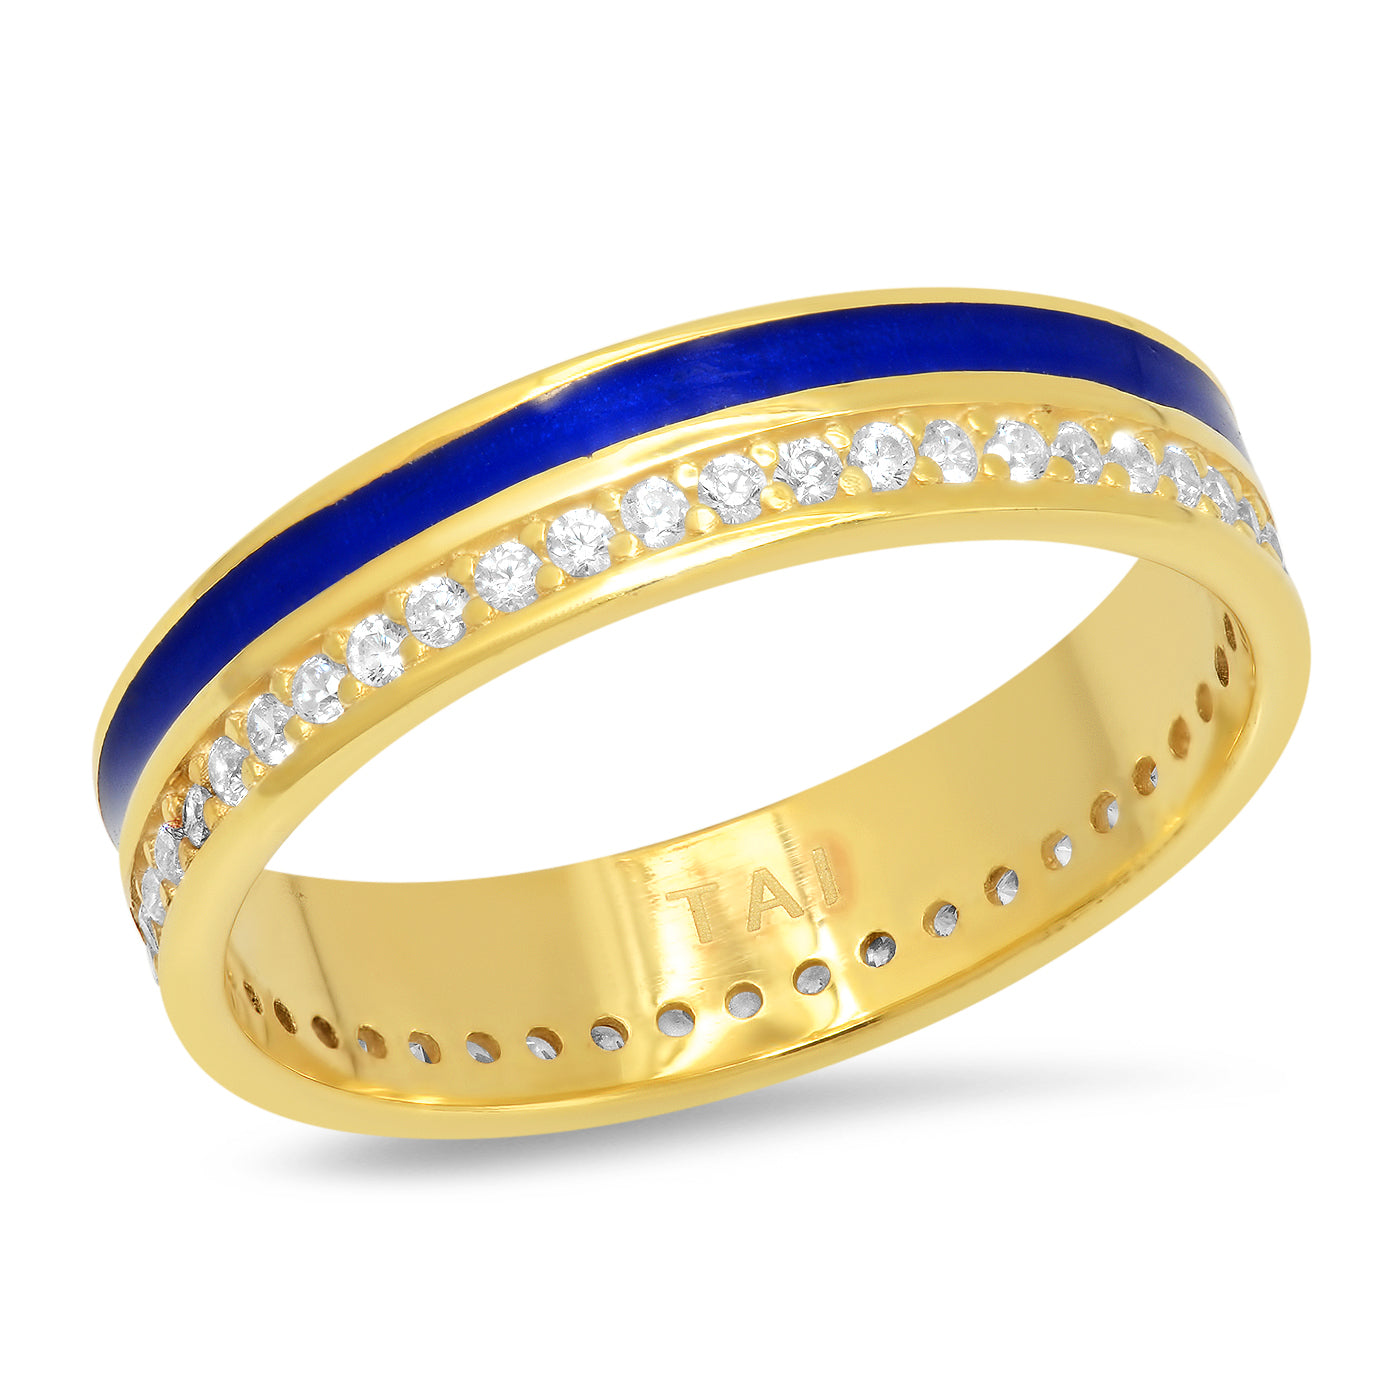 Enamel Ring Band with CZ Accents